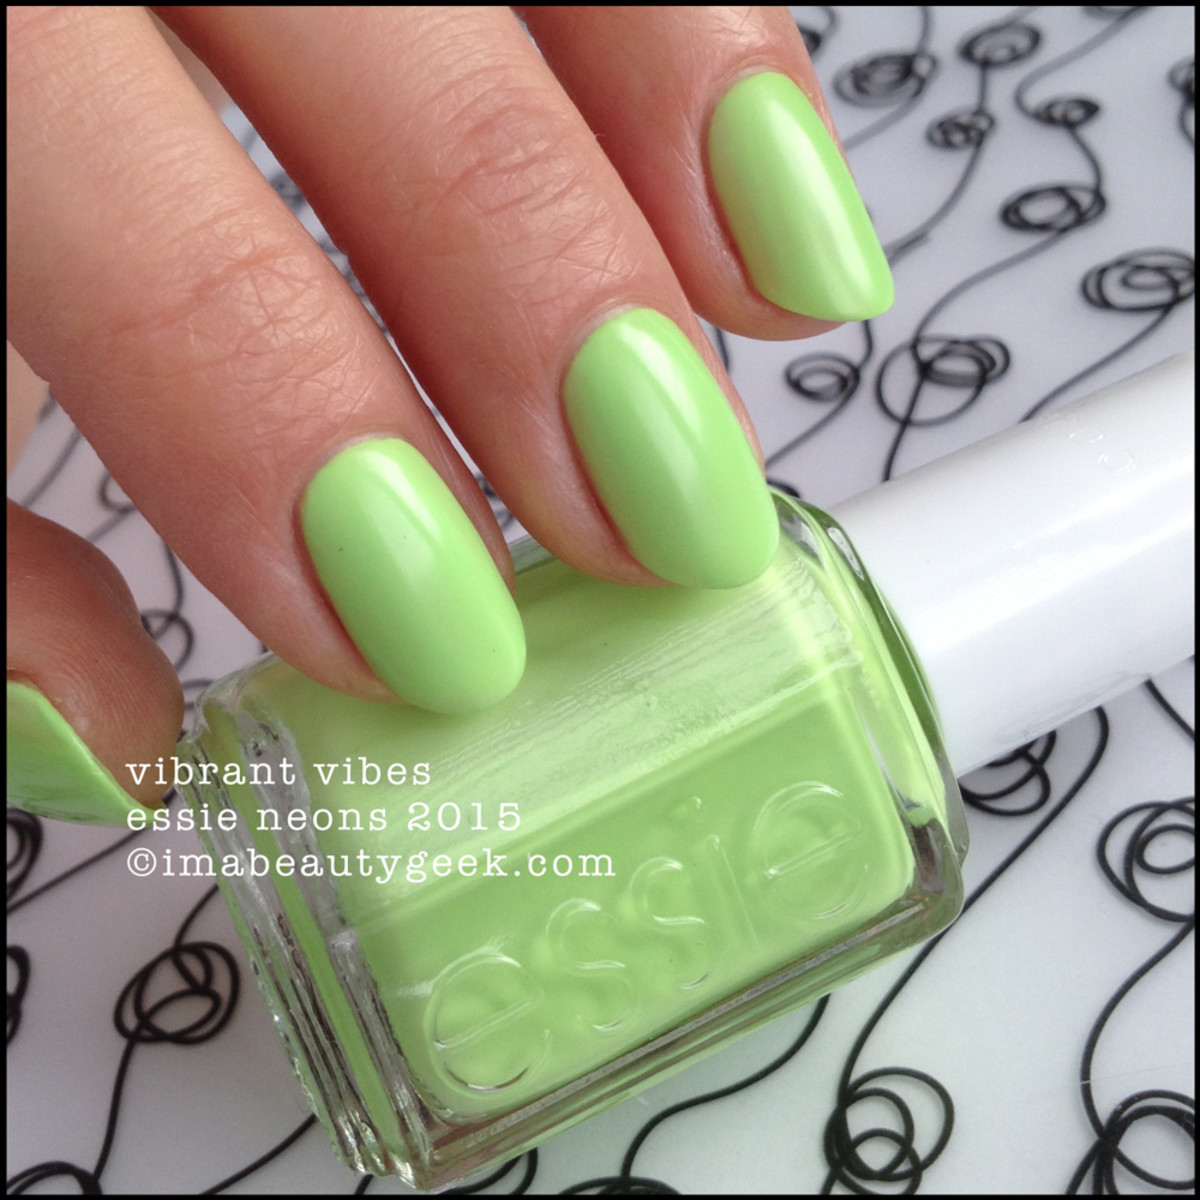 Essie Neon Collection 2015_Essie Vibrant Vibes Neon